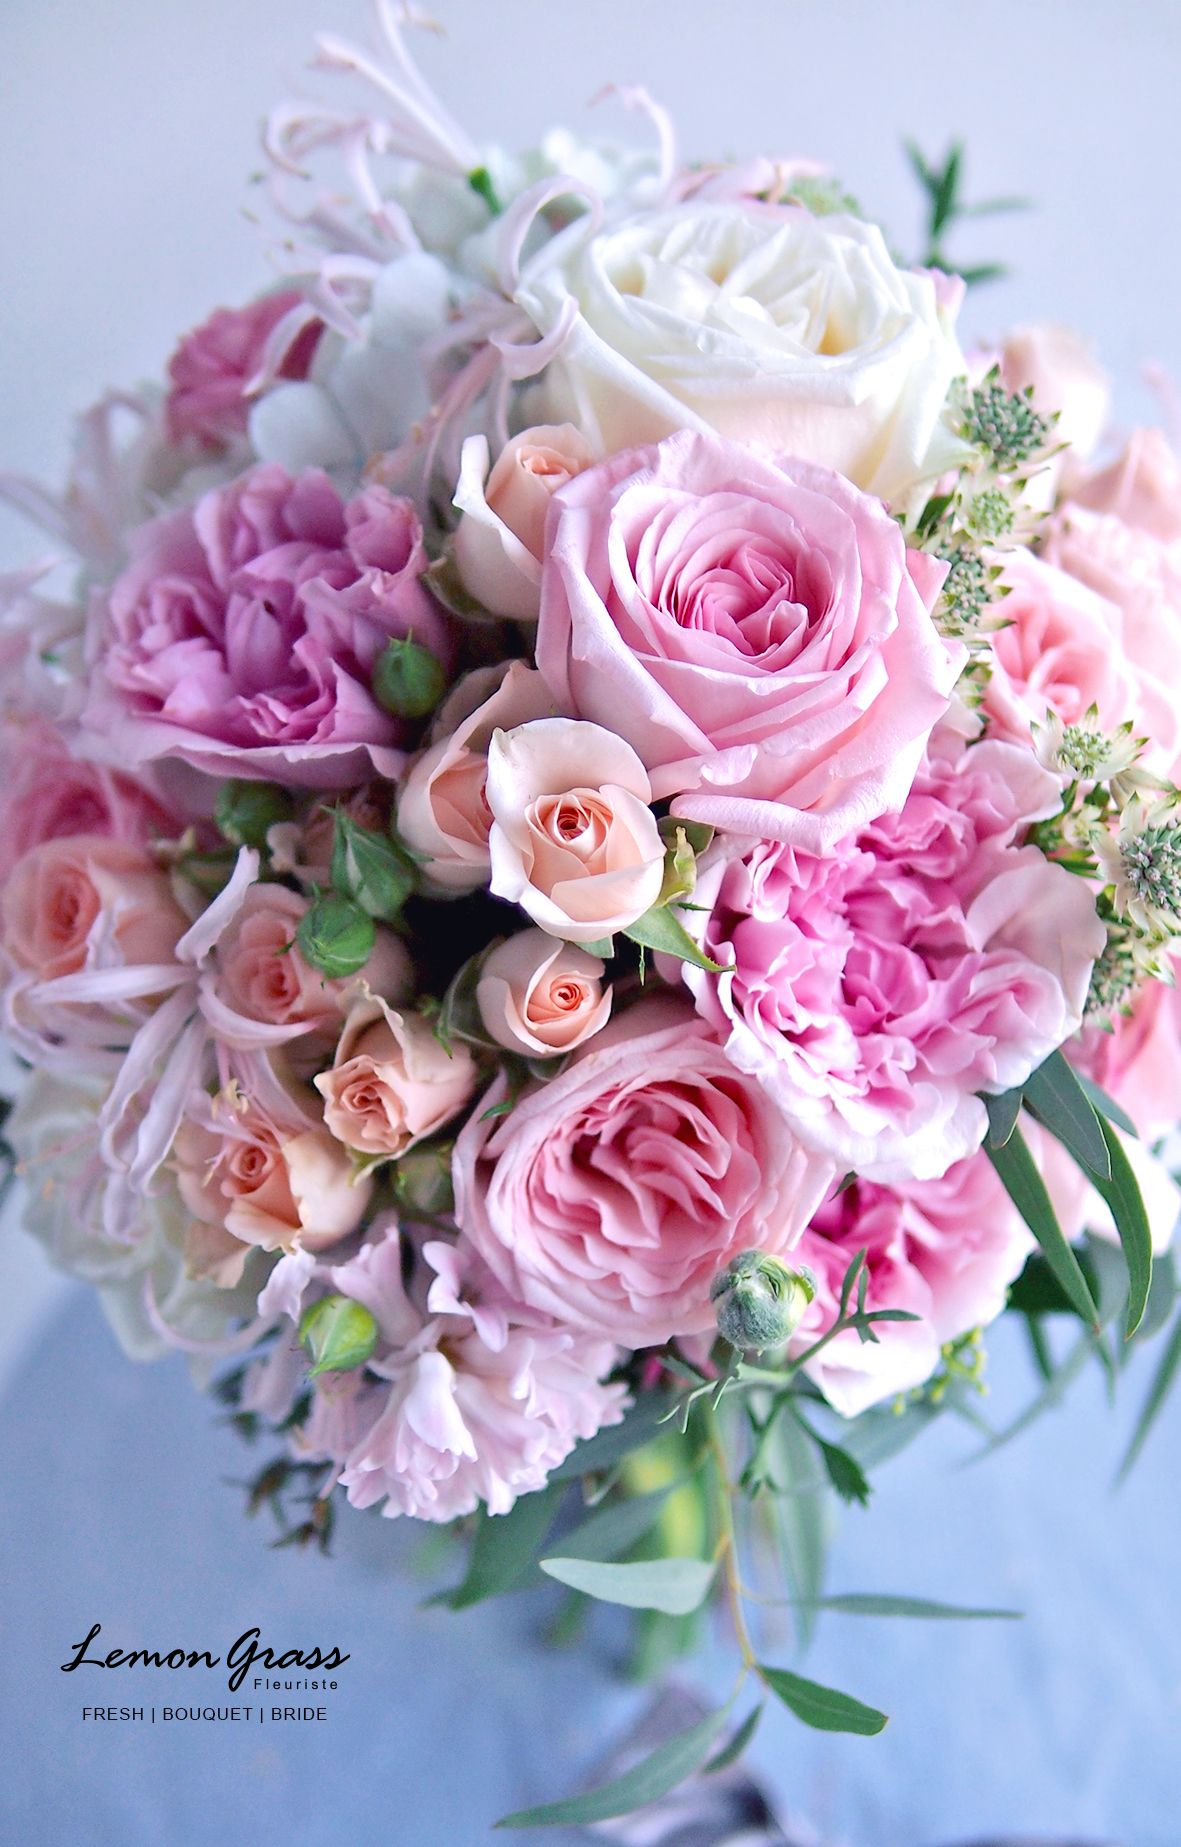 Pin by Наталья Симакина on Цветок   Pinterest   Flowers, Flower and ...